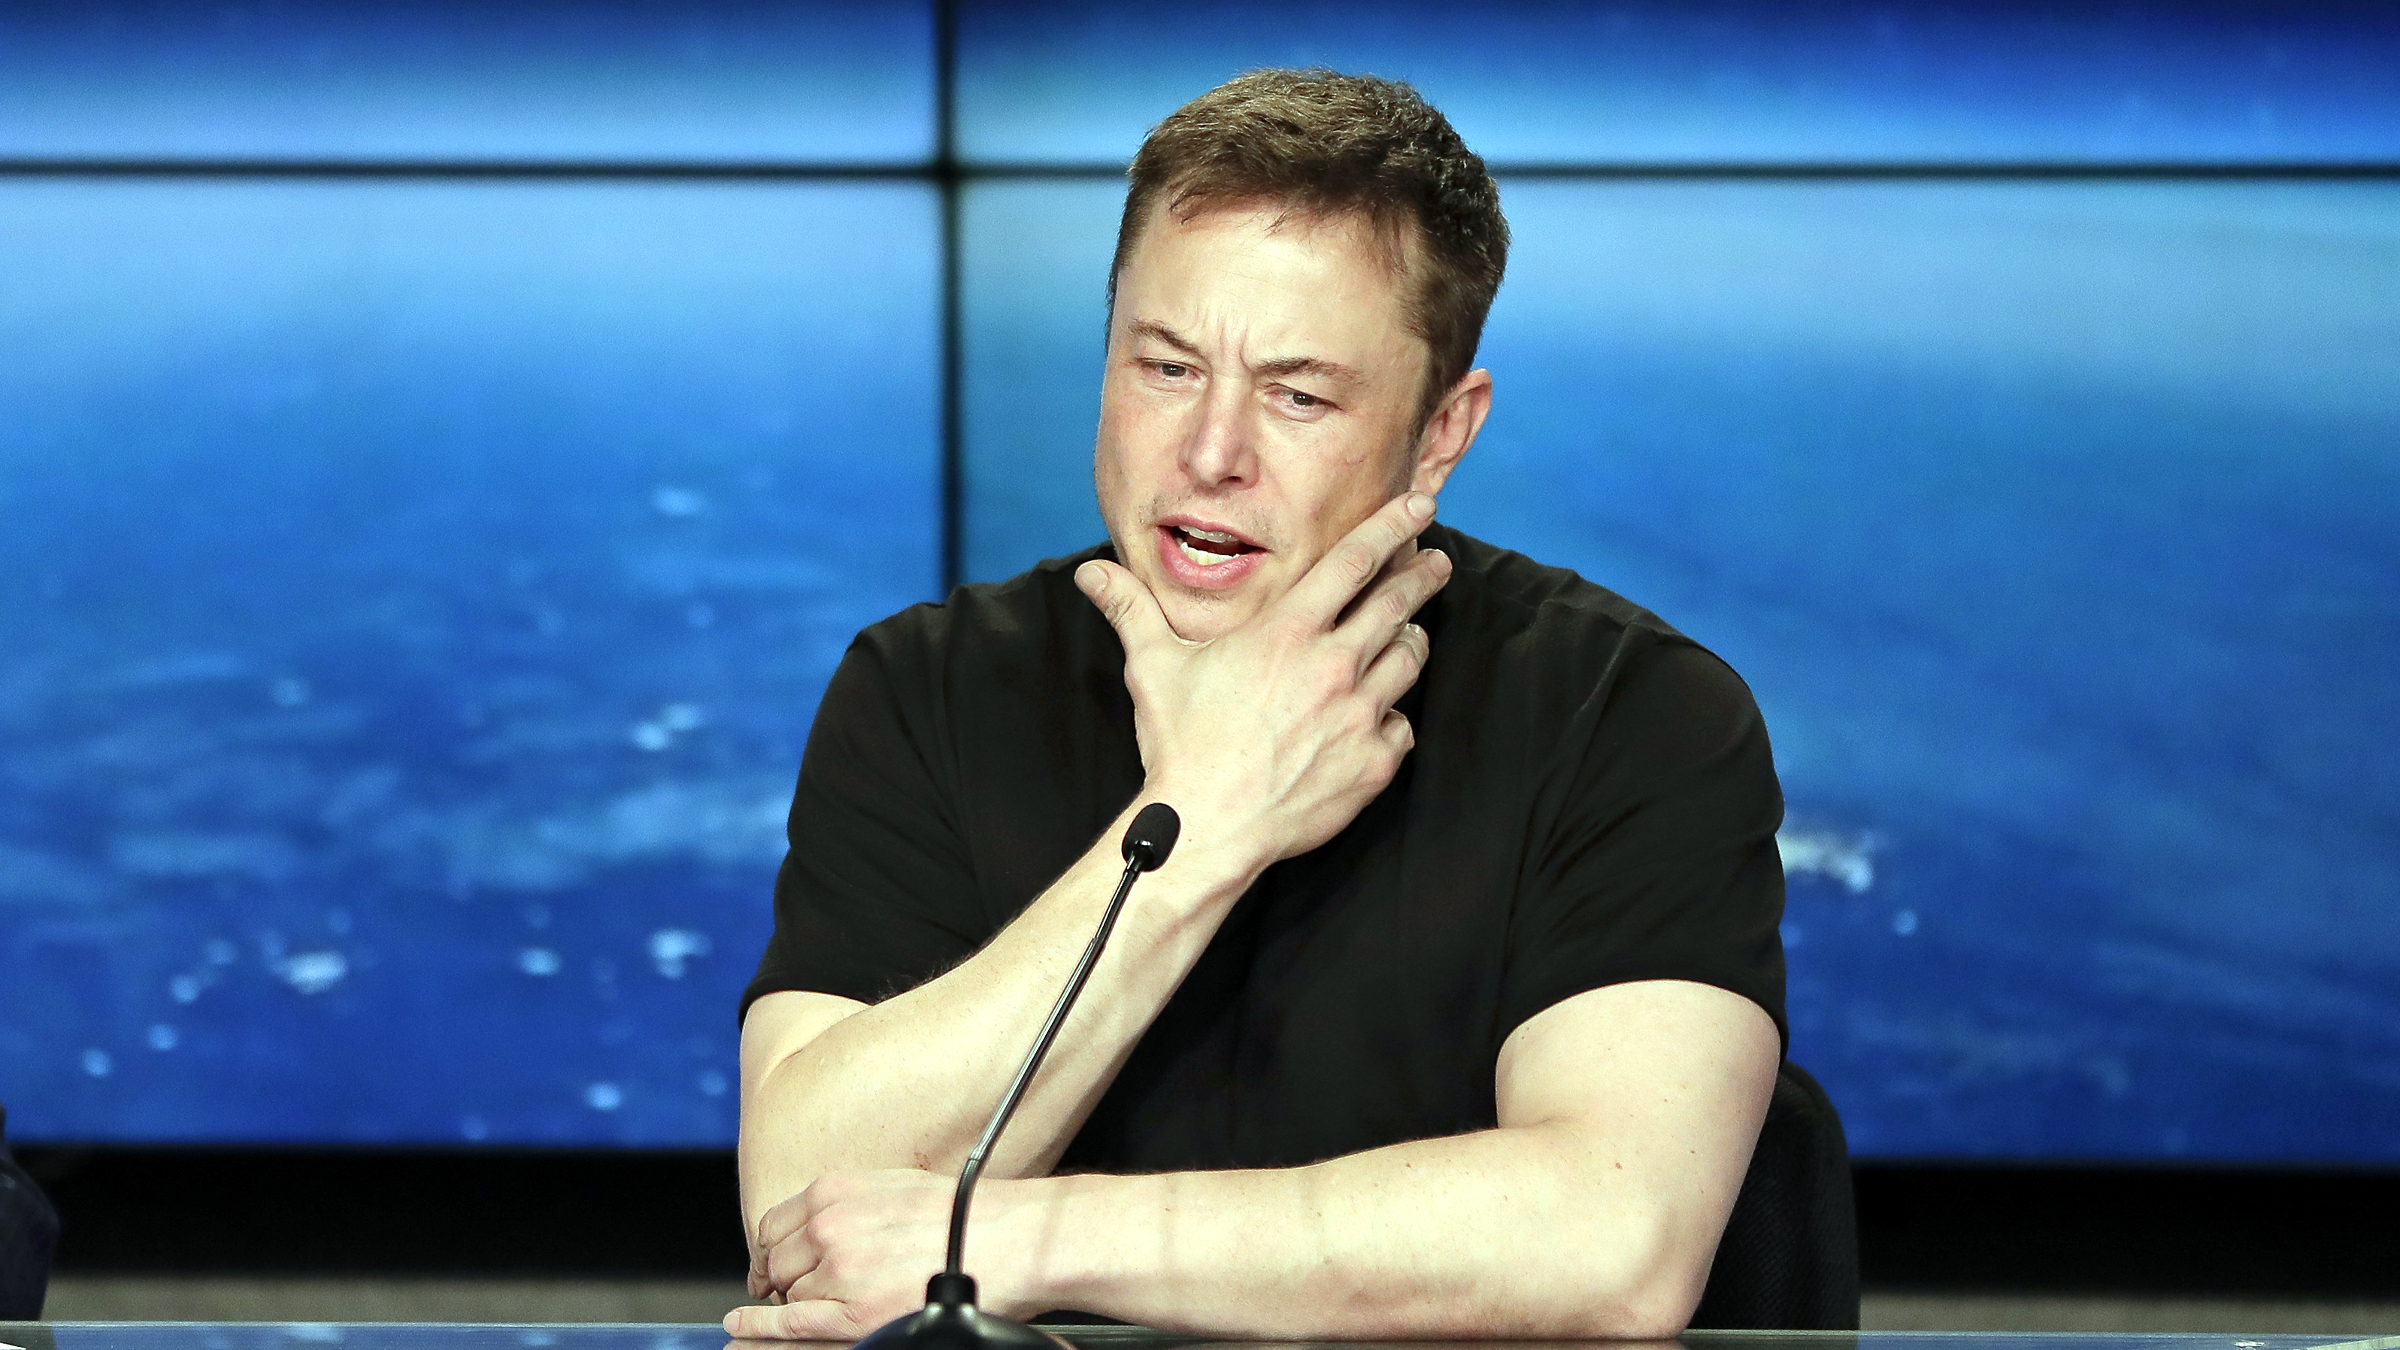 Elon Musk Wants Spacex To Launch The Same Rocket To Orbit Twice In A